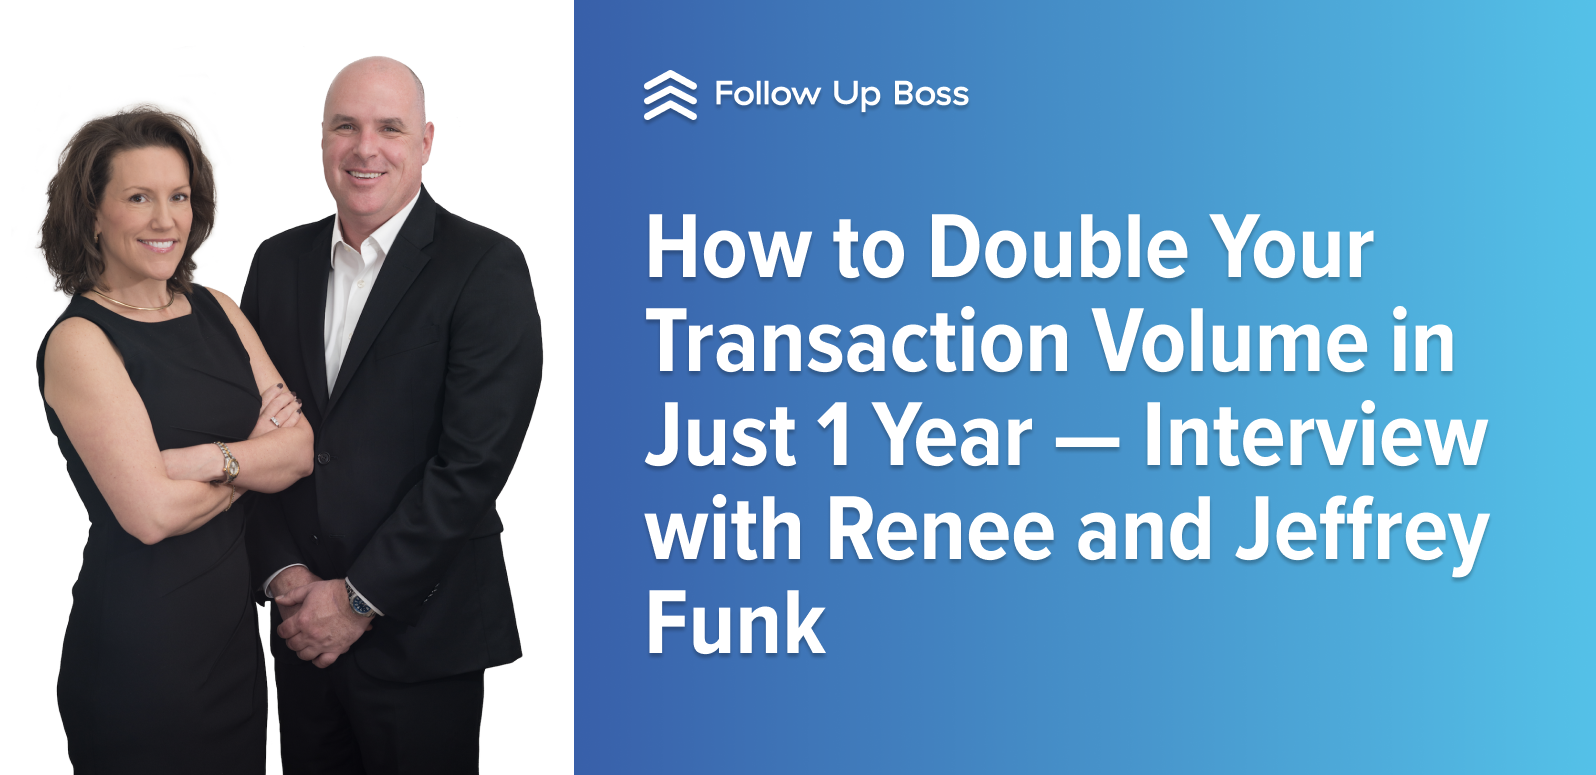 How to Double Your Transaction Volume in Just 1 Year - Interview with Renee and Jeffrey Funk